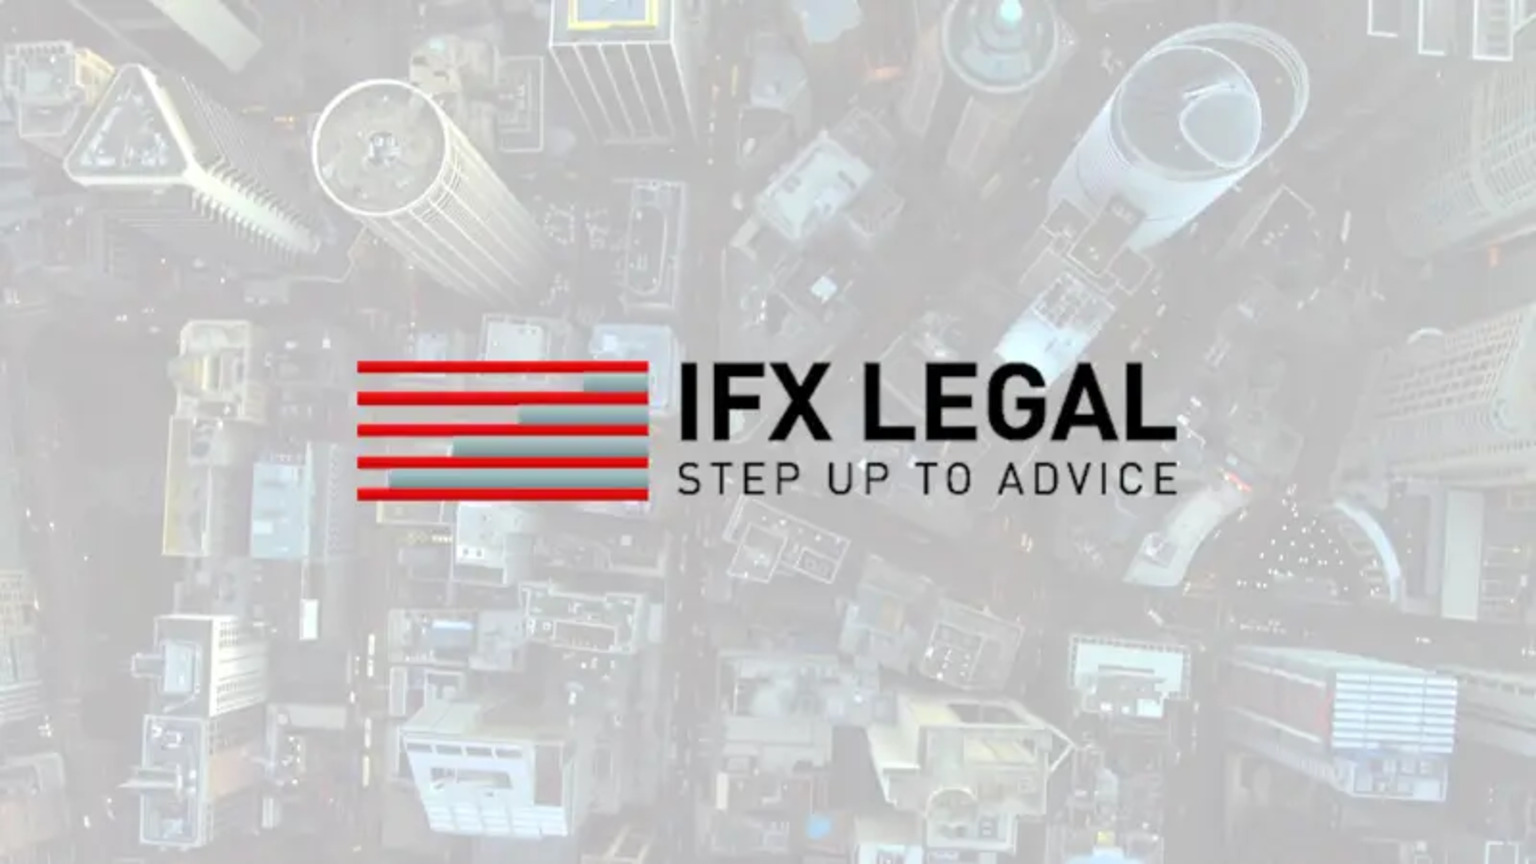 IFX Legal